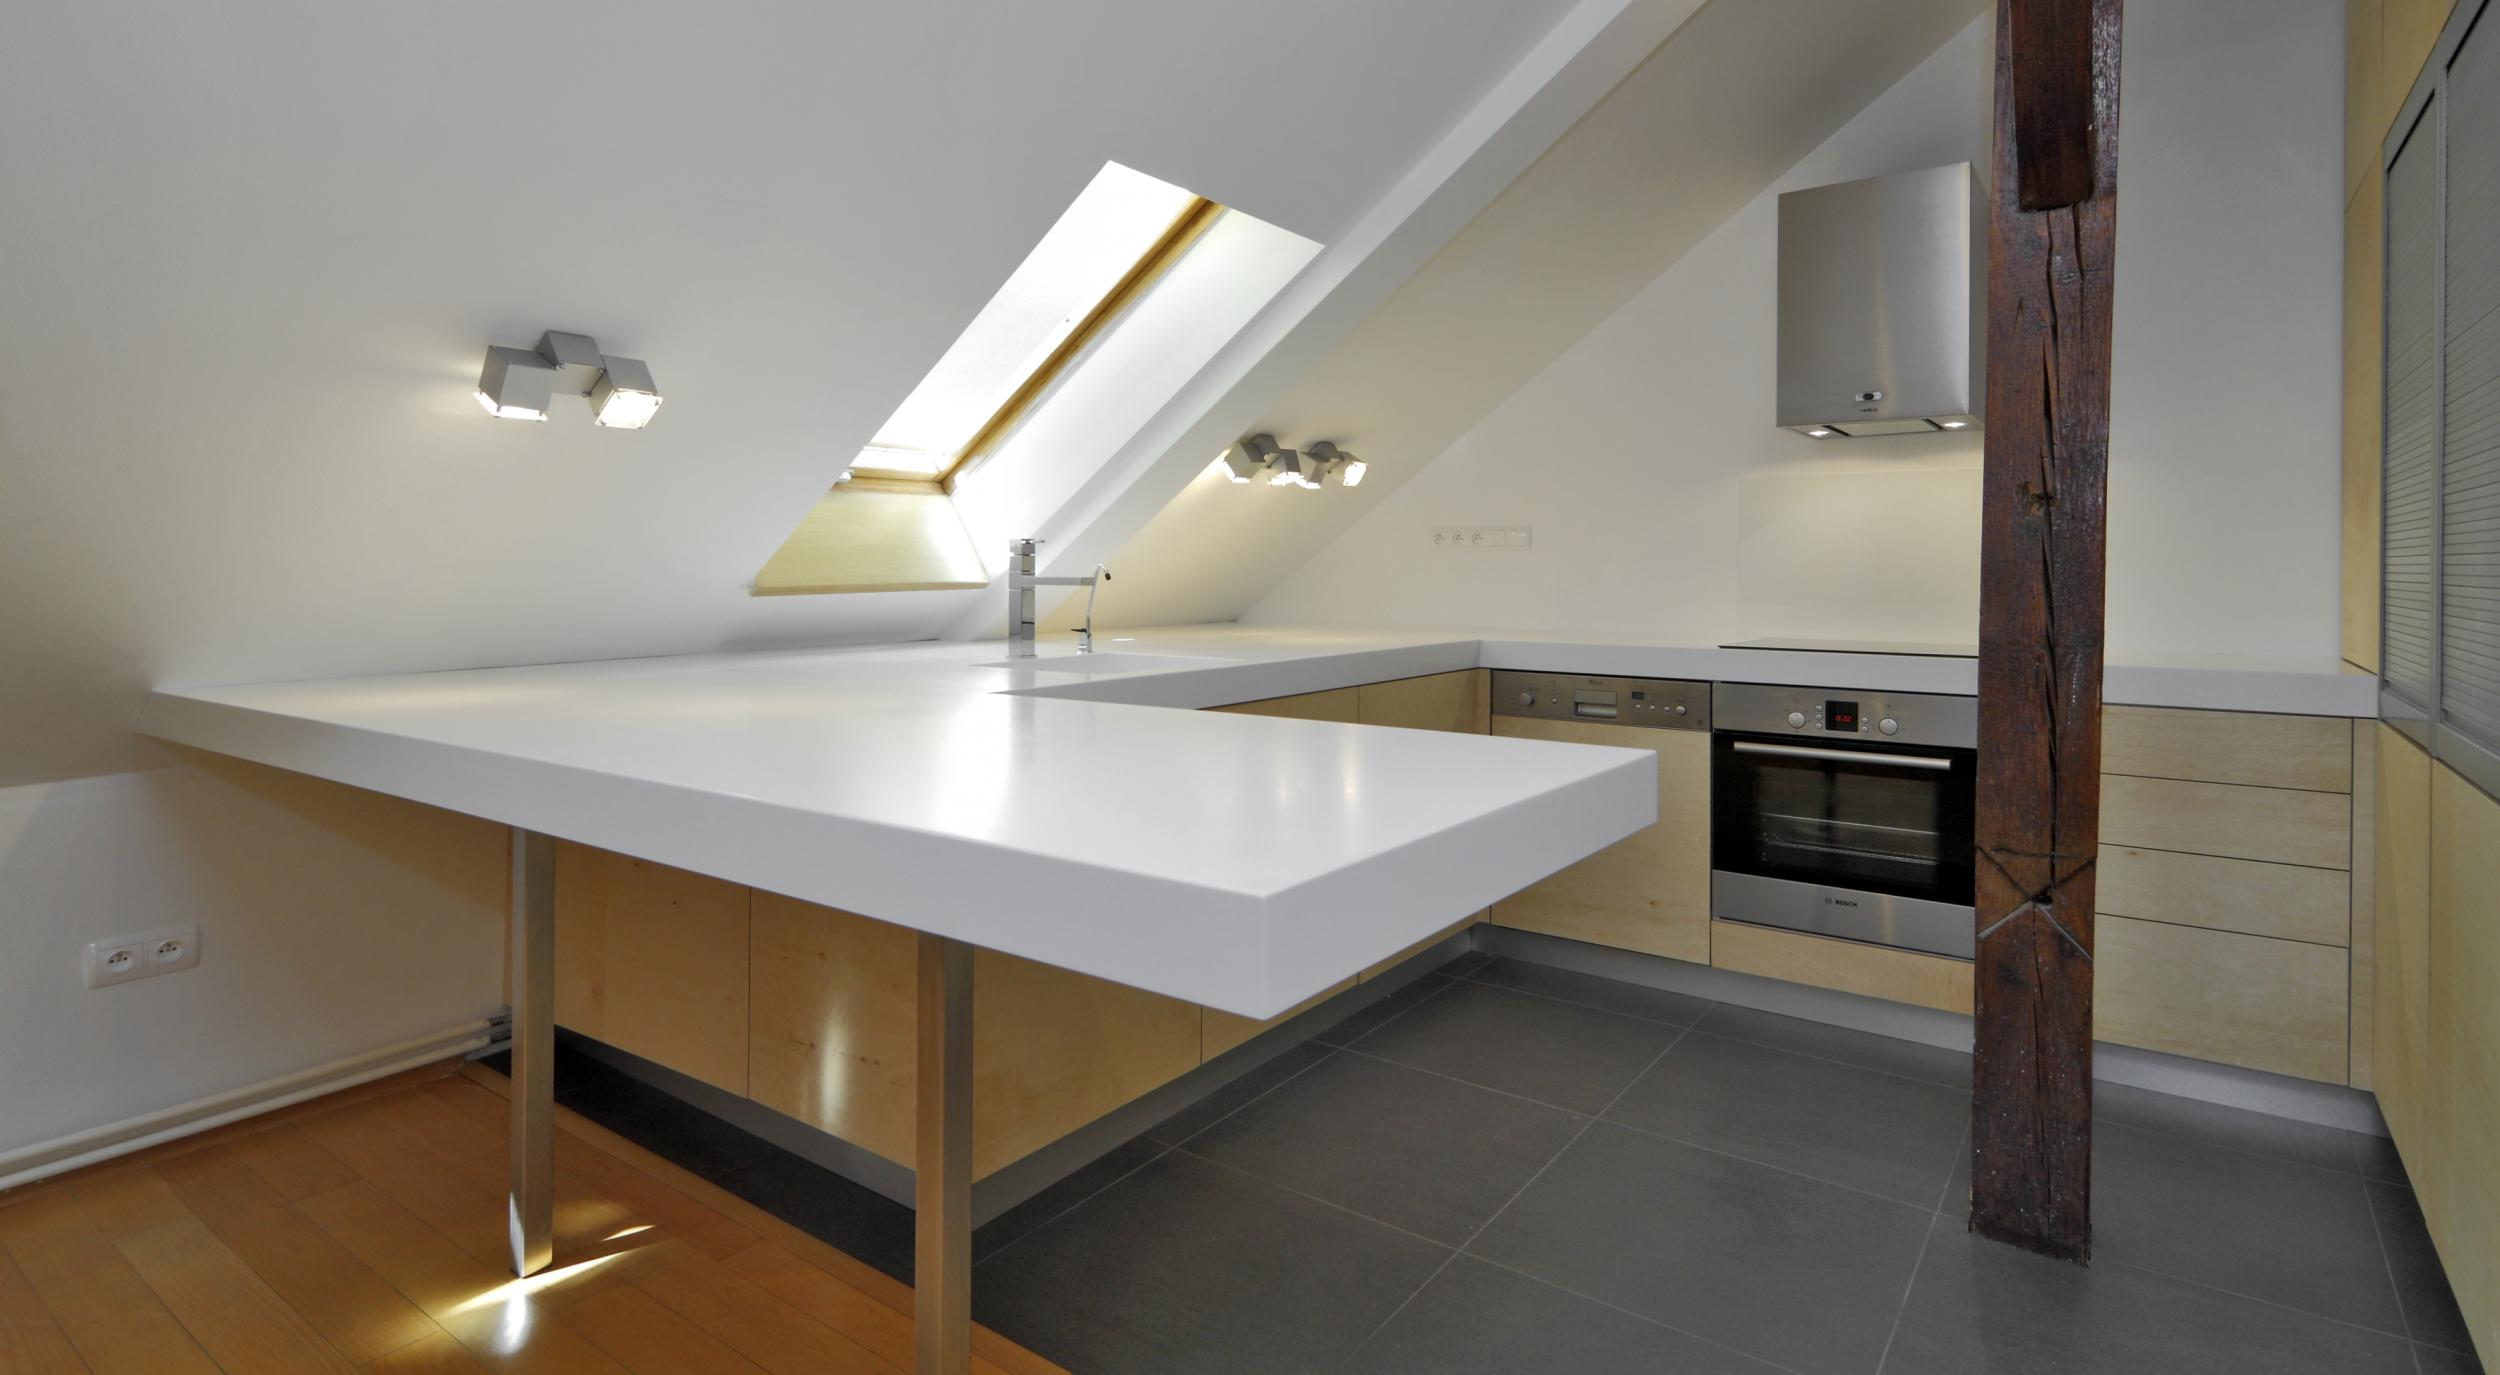 Attic Kitchen Attic Kitchen Bratislava Slovakia Rules Architects